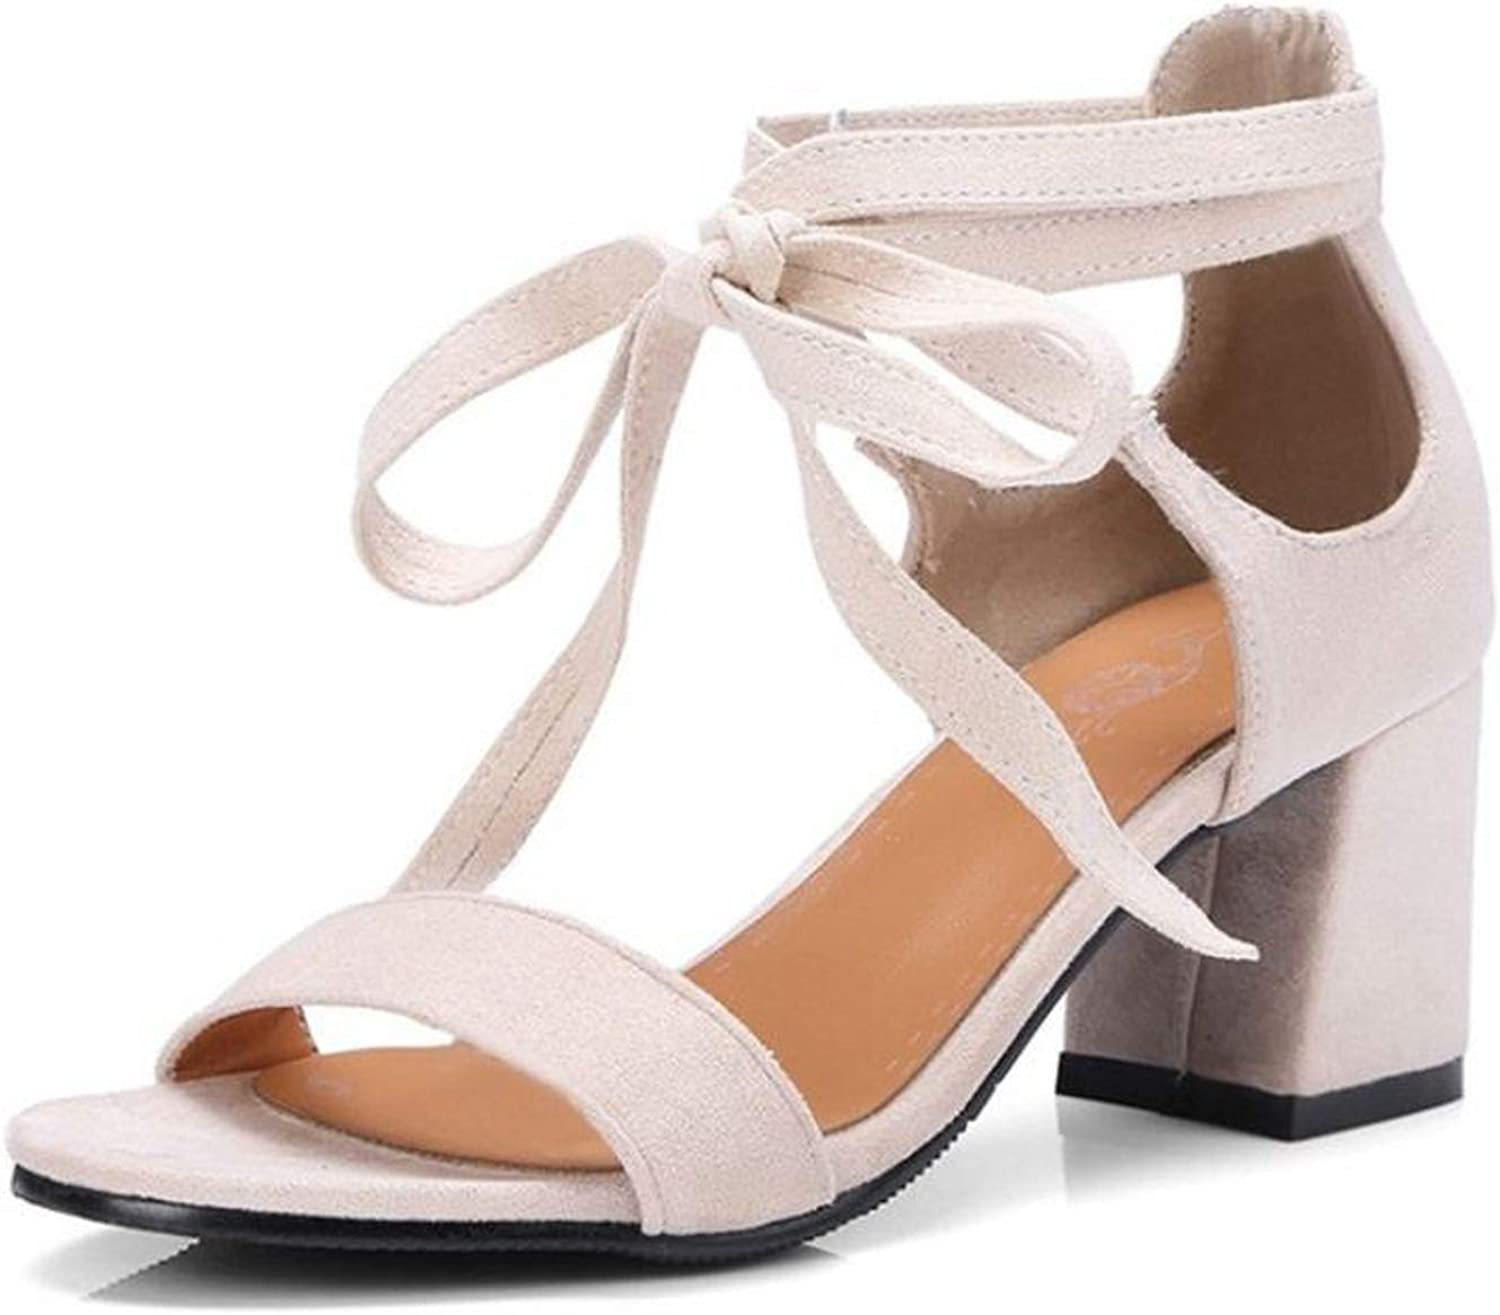 Forever Long Simple Women High Heel Sandals Cross Strap Solid color Thick Heel Sandals Summer Club shoes